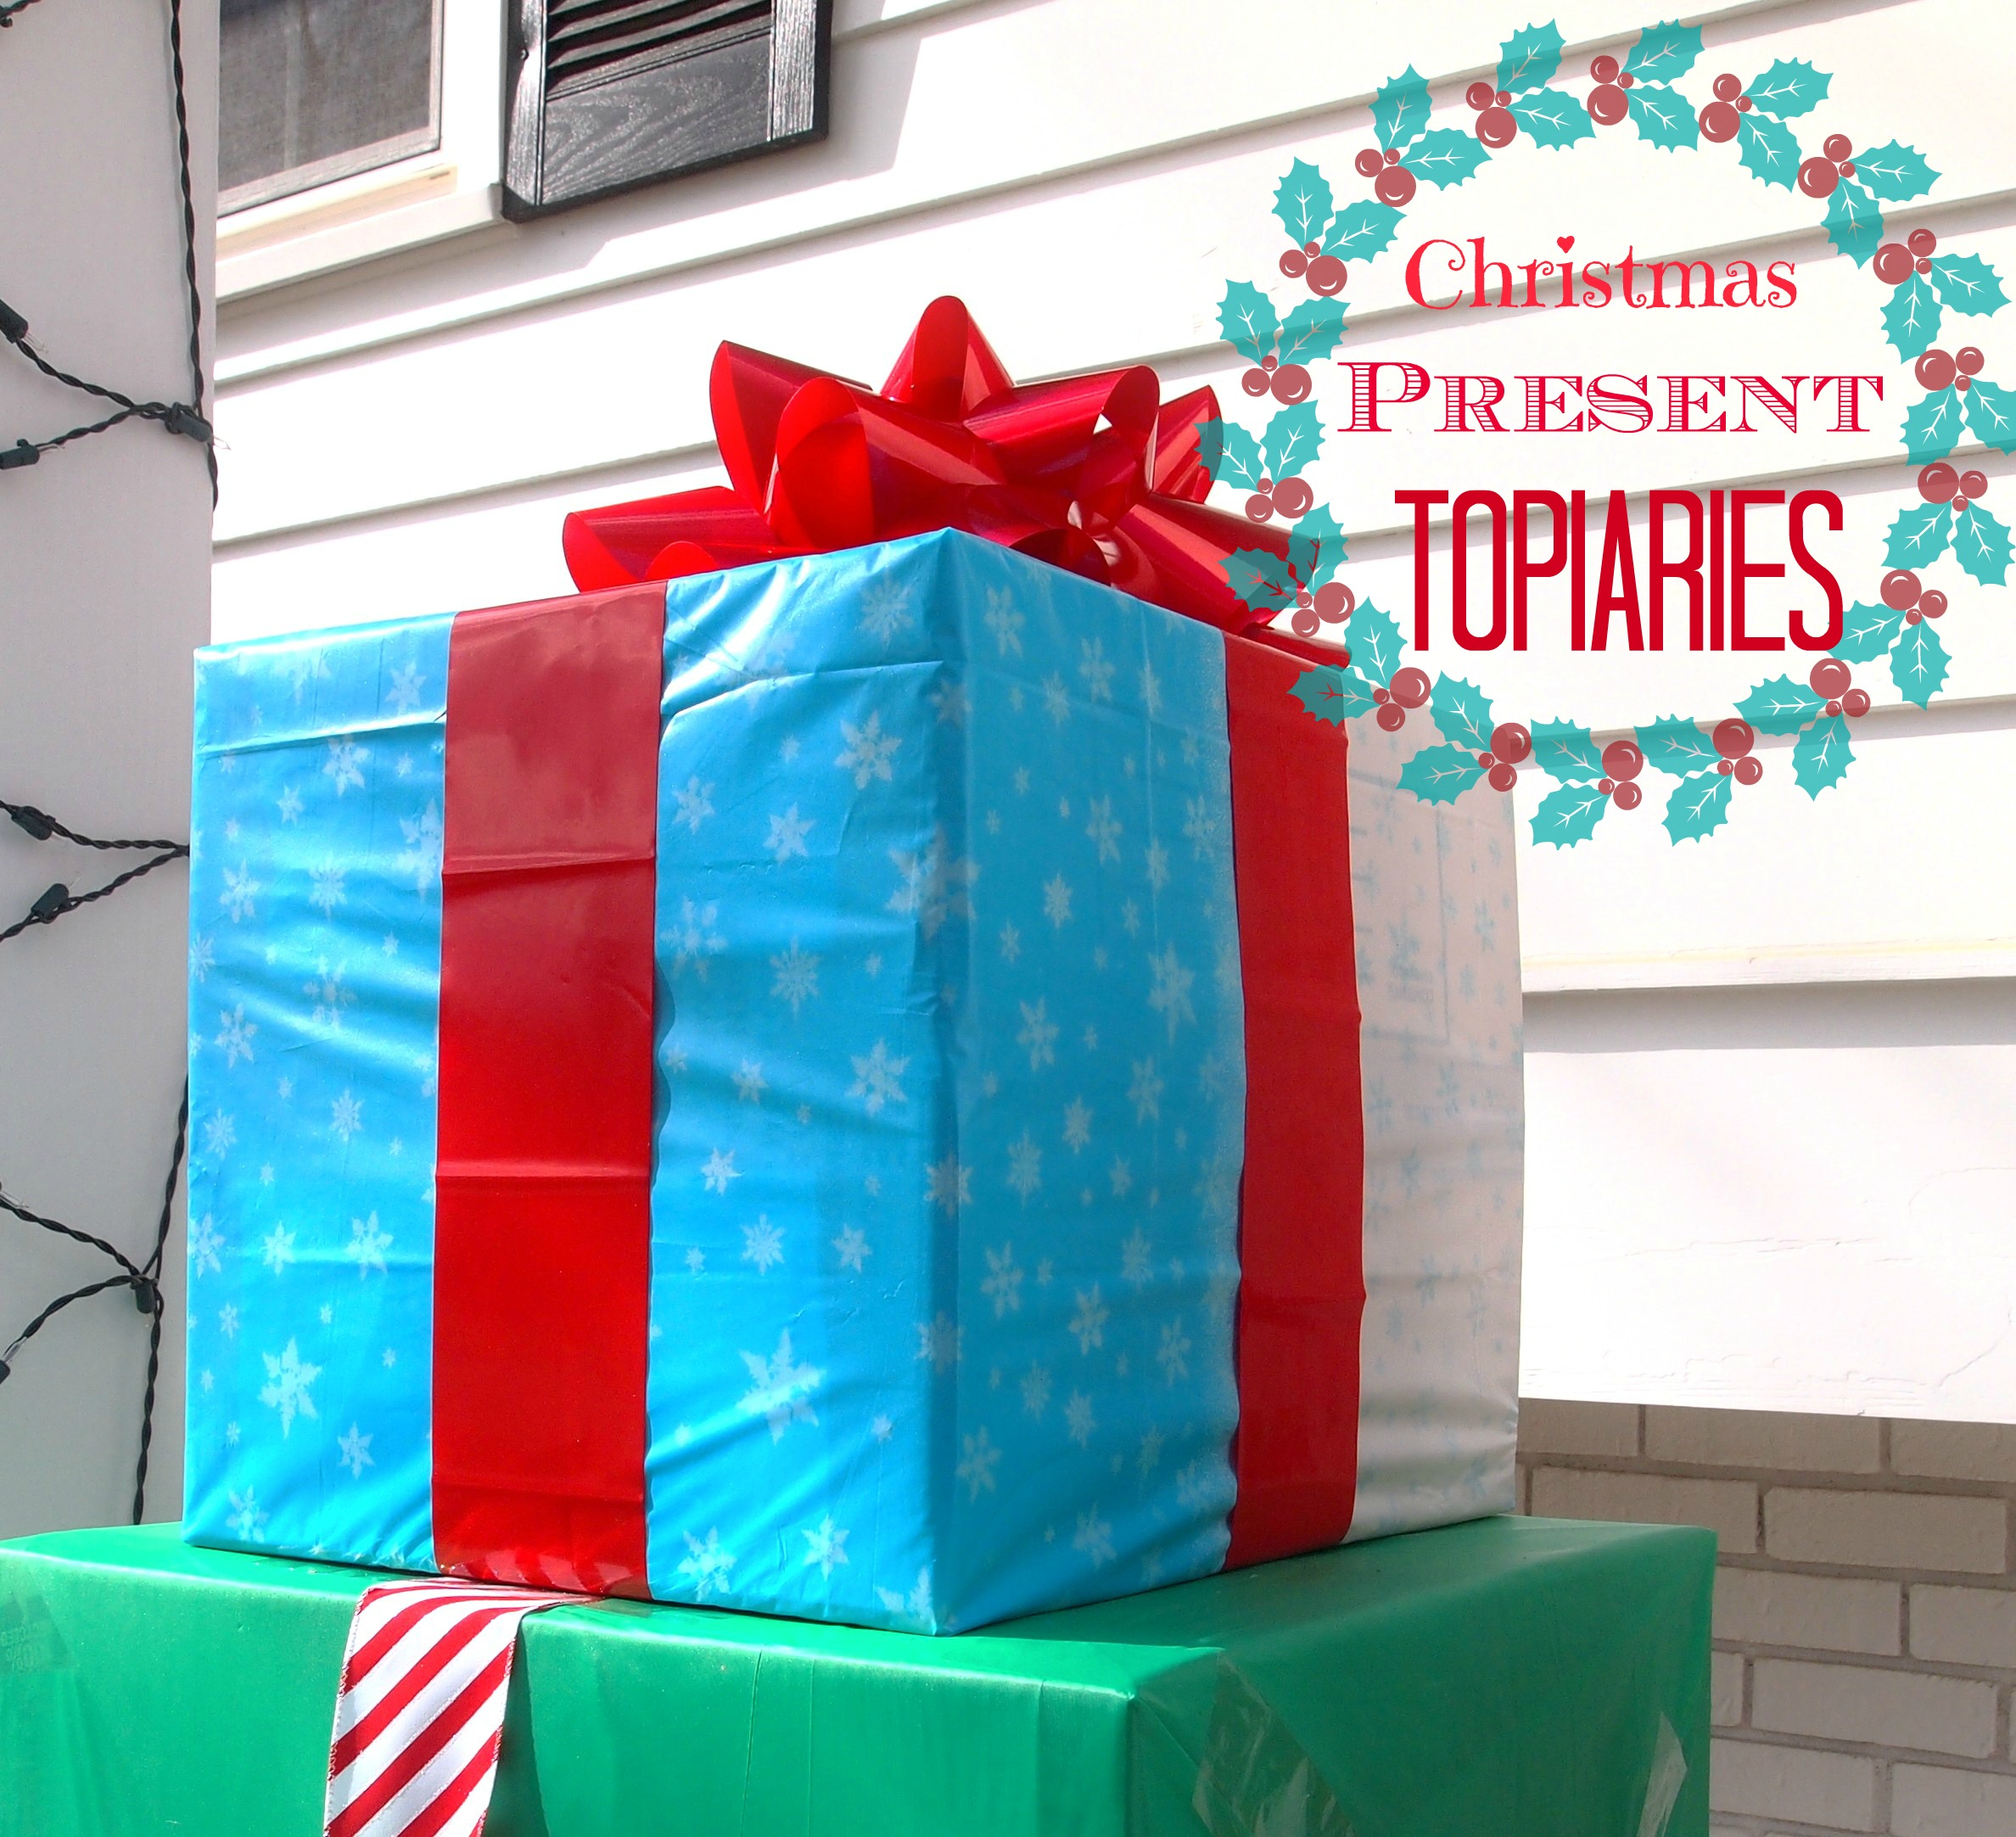 How To Make An Outdoor Christmas Present Topiary